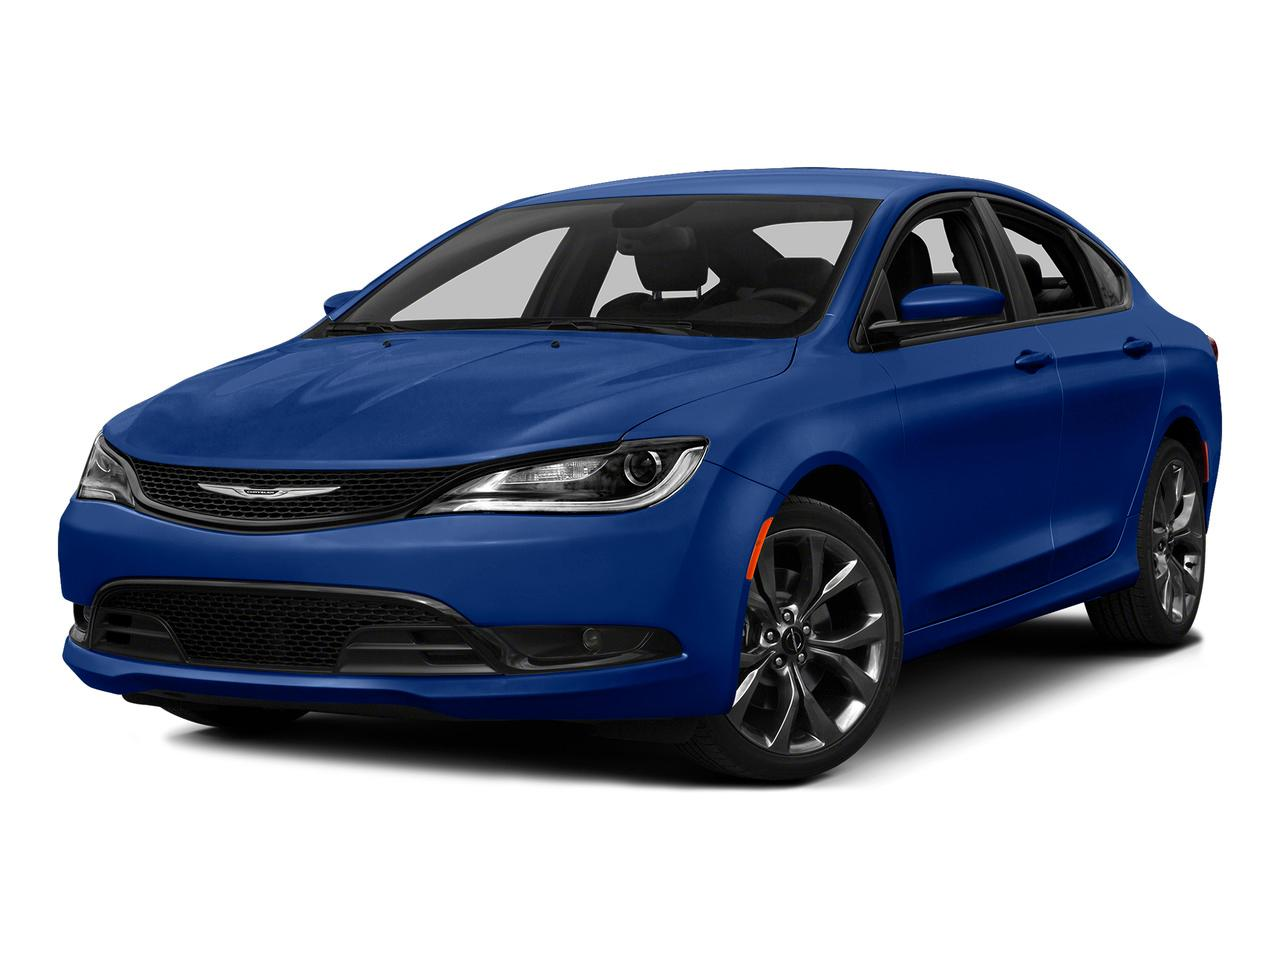 2015 Chrysler 200 Vehicle Photo in Pittsburgh, PA 15226